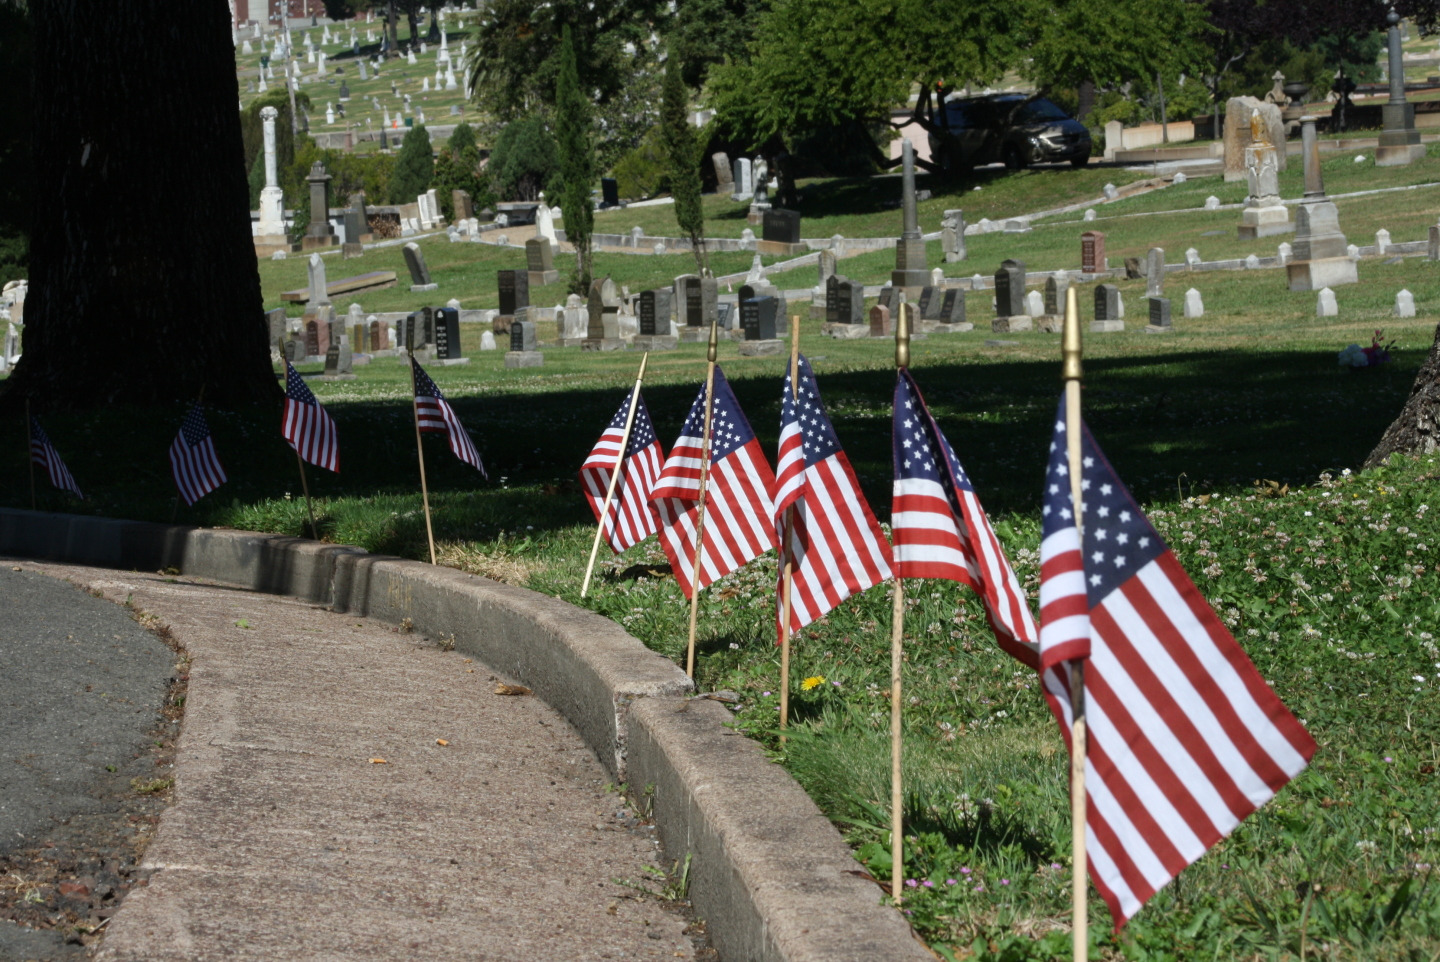 Flags line the path to a Memorial Day ceremony at Mountain View Cemetery in Oakland on May 26, 2014. (Alex Emslie/KQED)